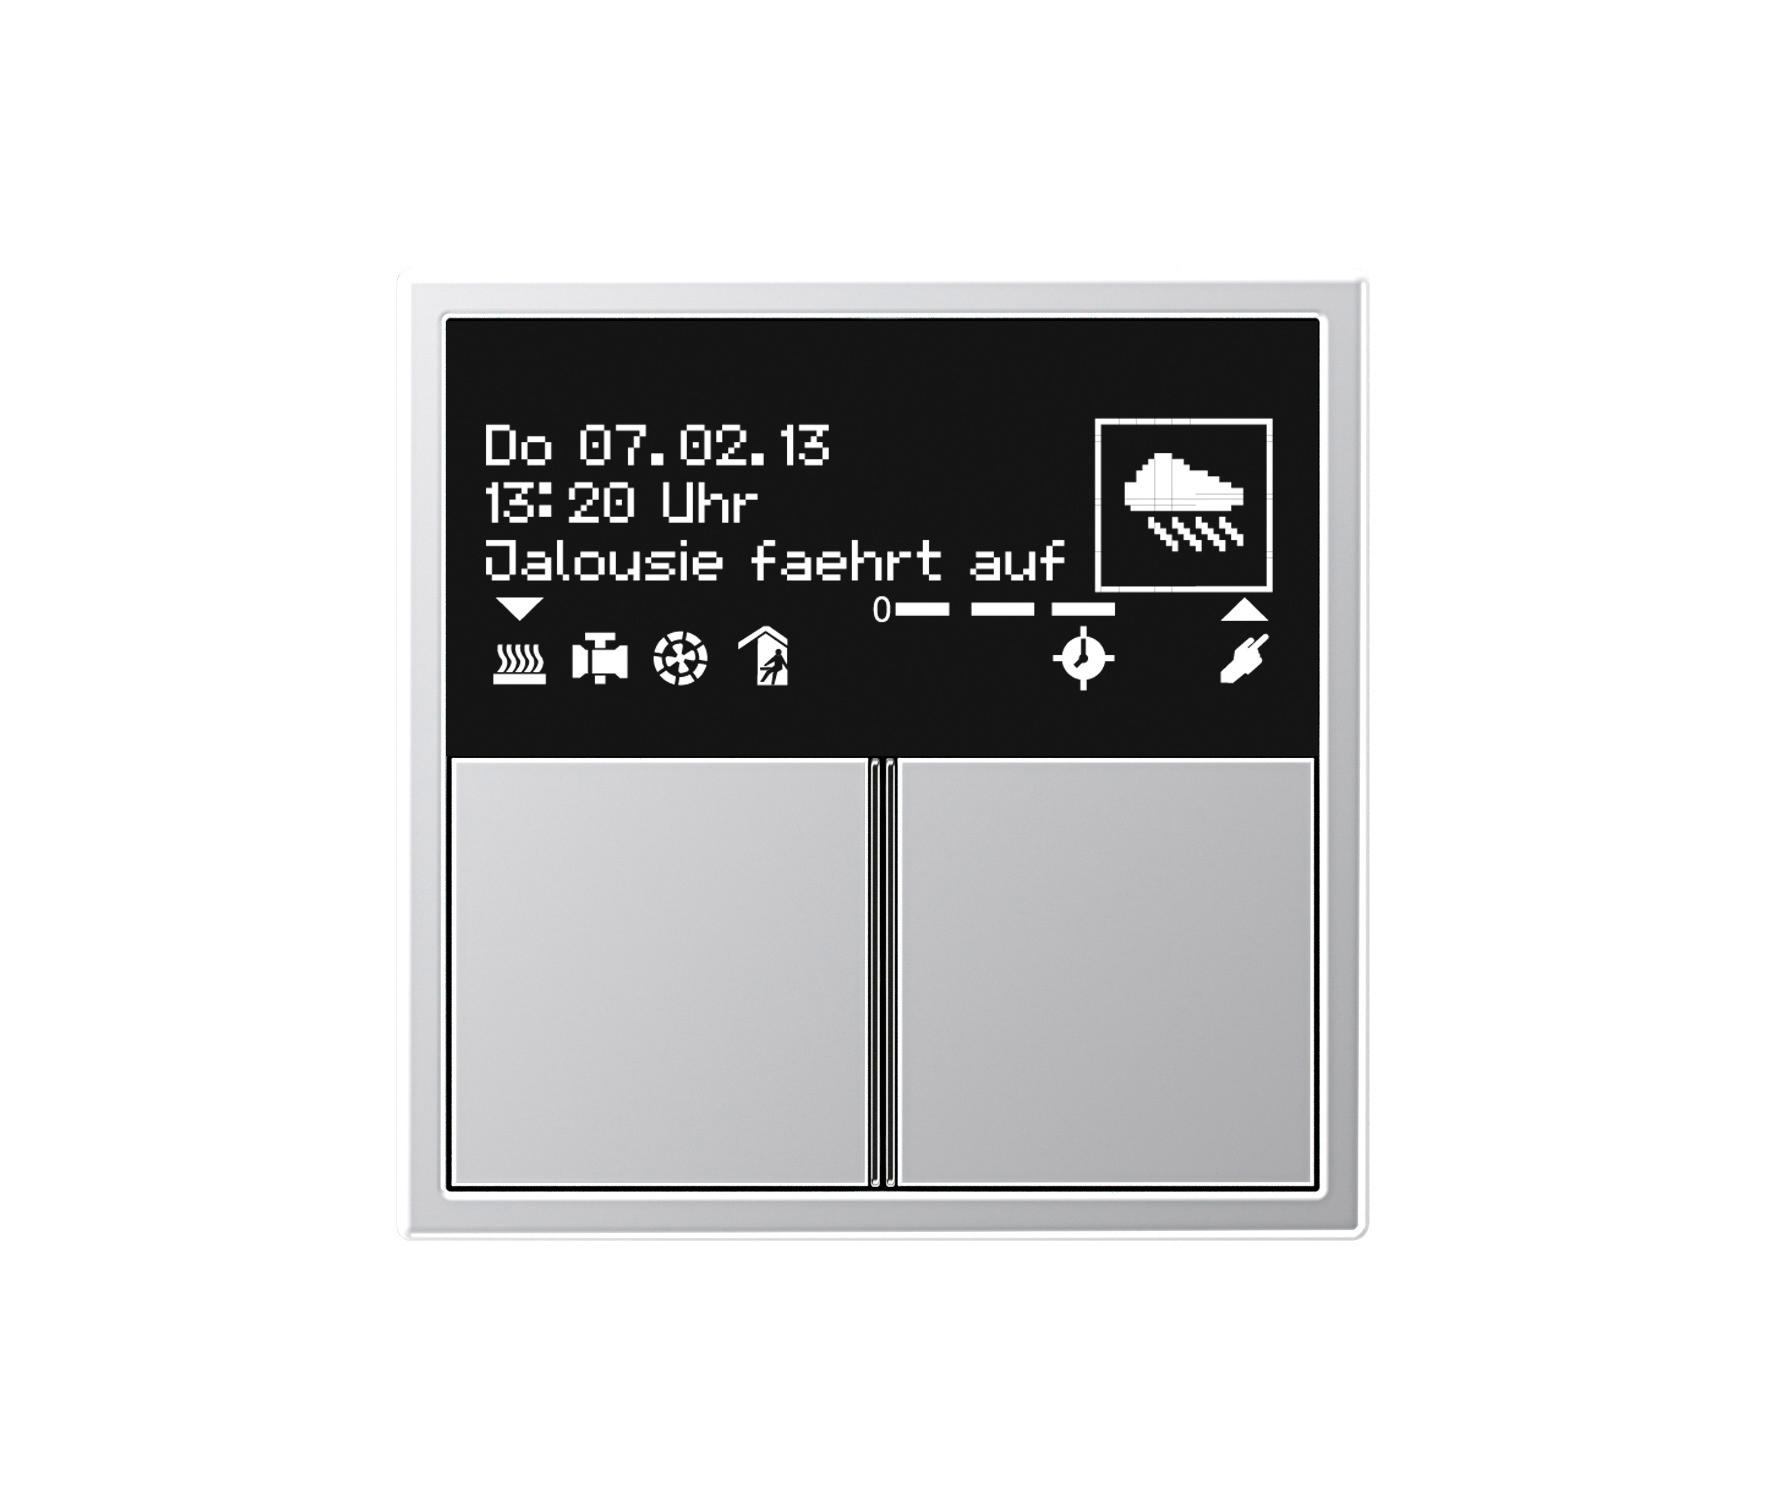 knx room controller oled ls 990 knx systems from jung architonic. Black Bedroom Furniture Sets. Home Design Ideas